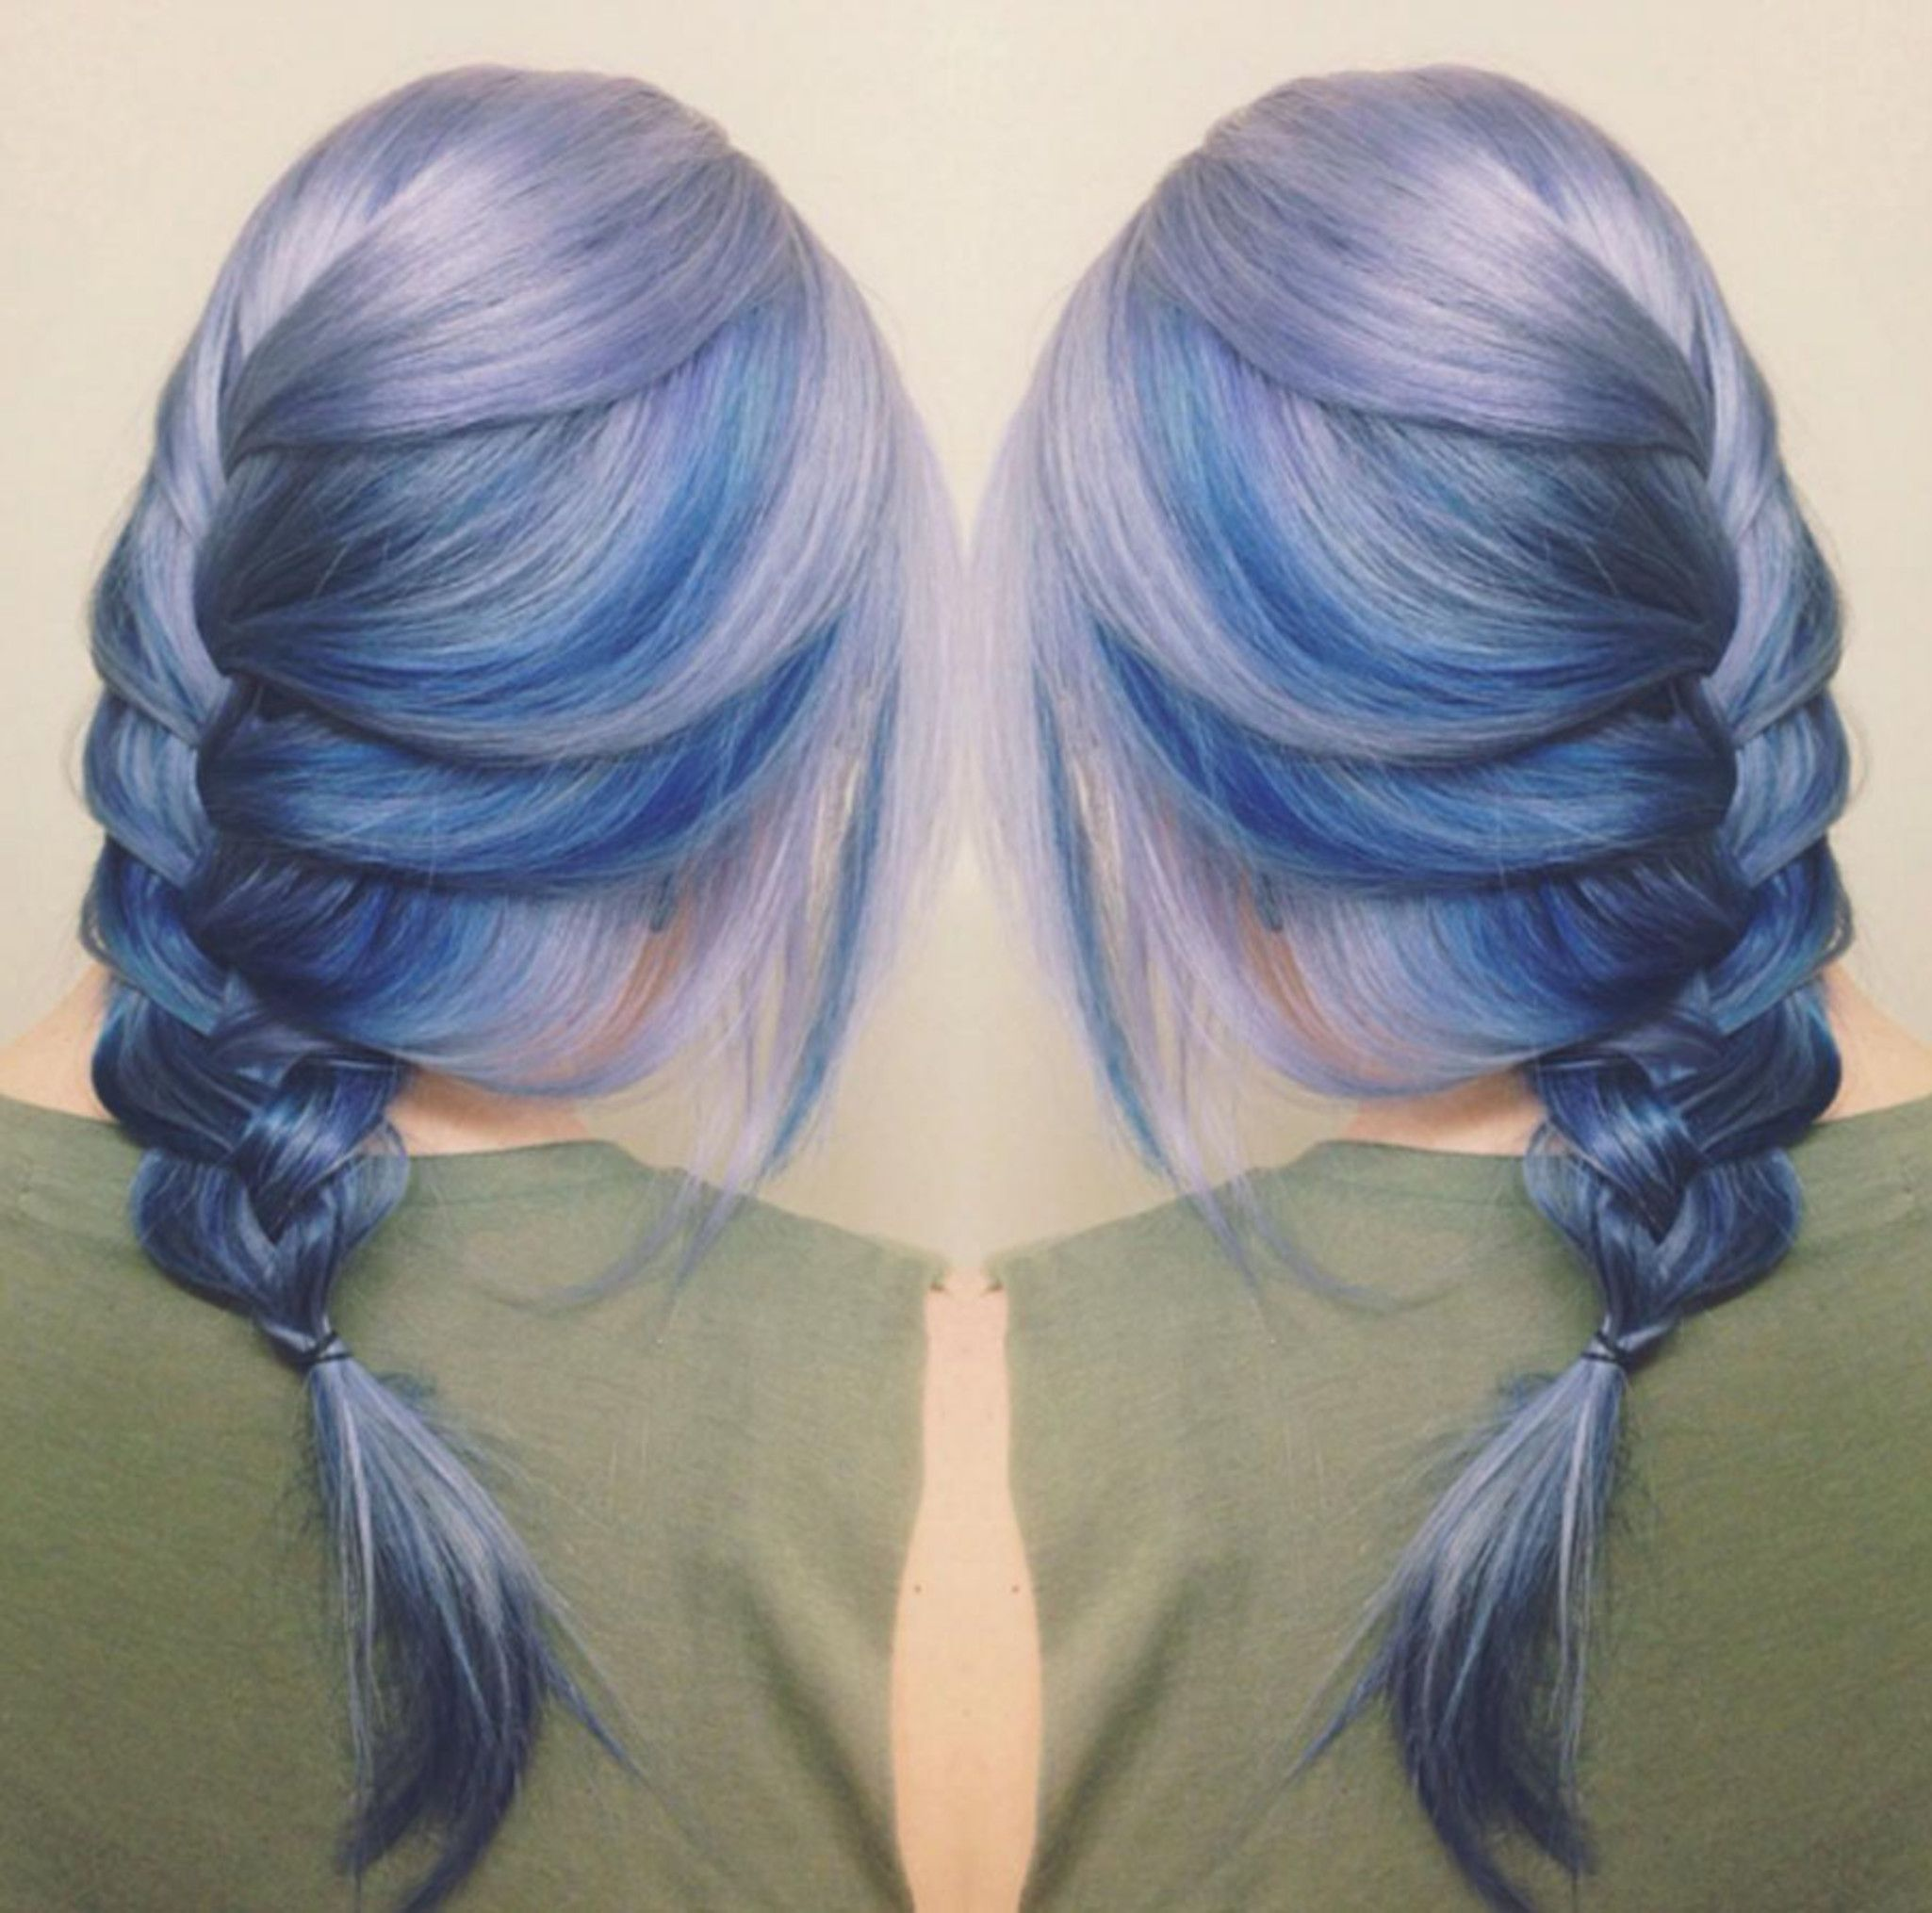 It's been quite a year for brightly colored hair, but the hair color gods have saved the best for last: moonstone.